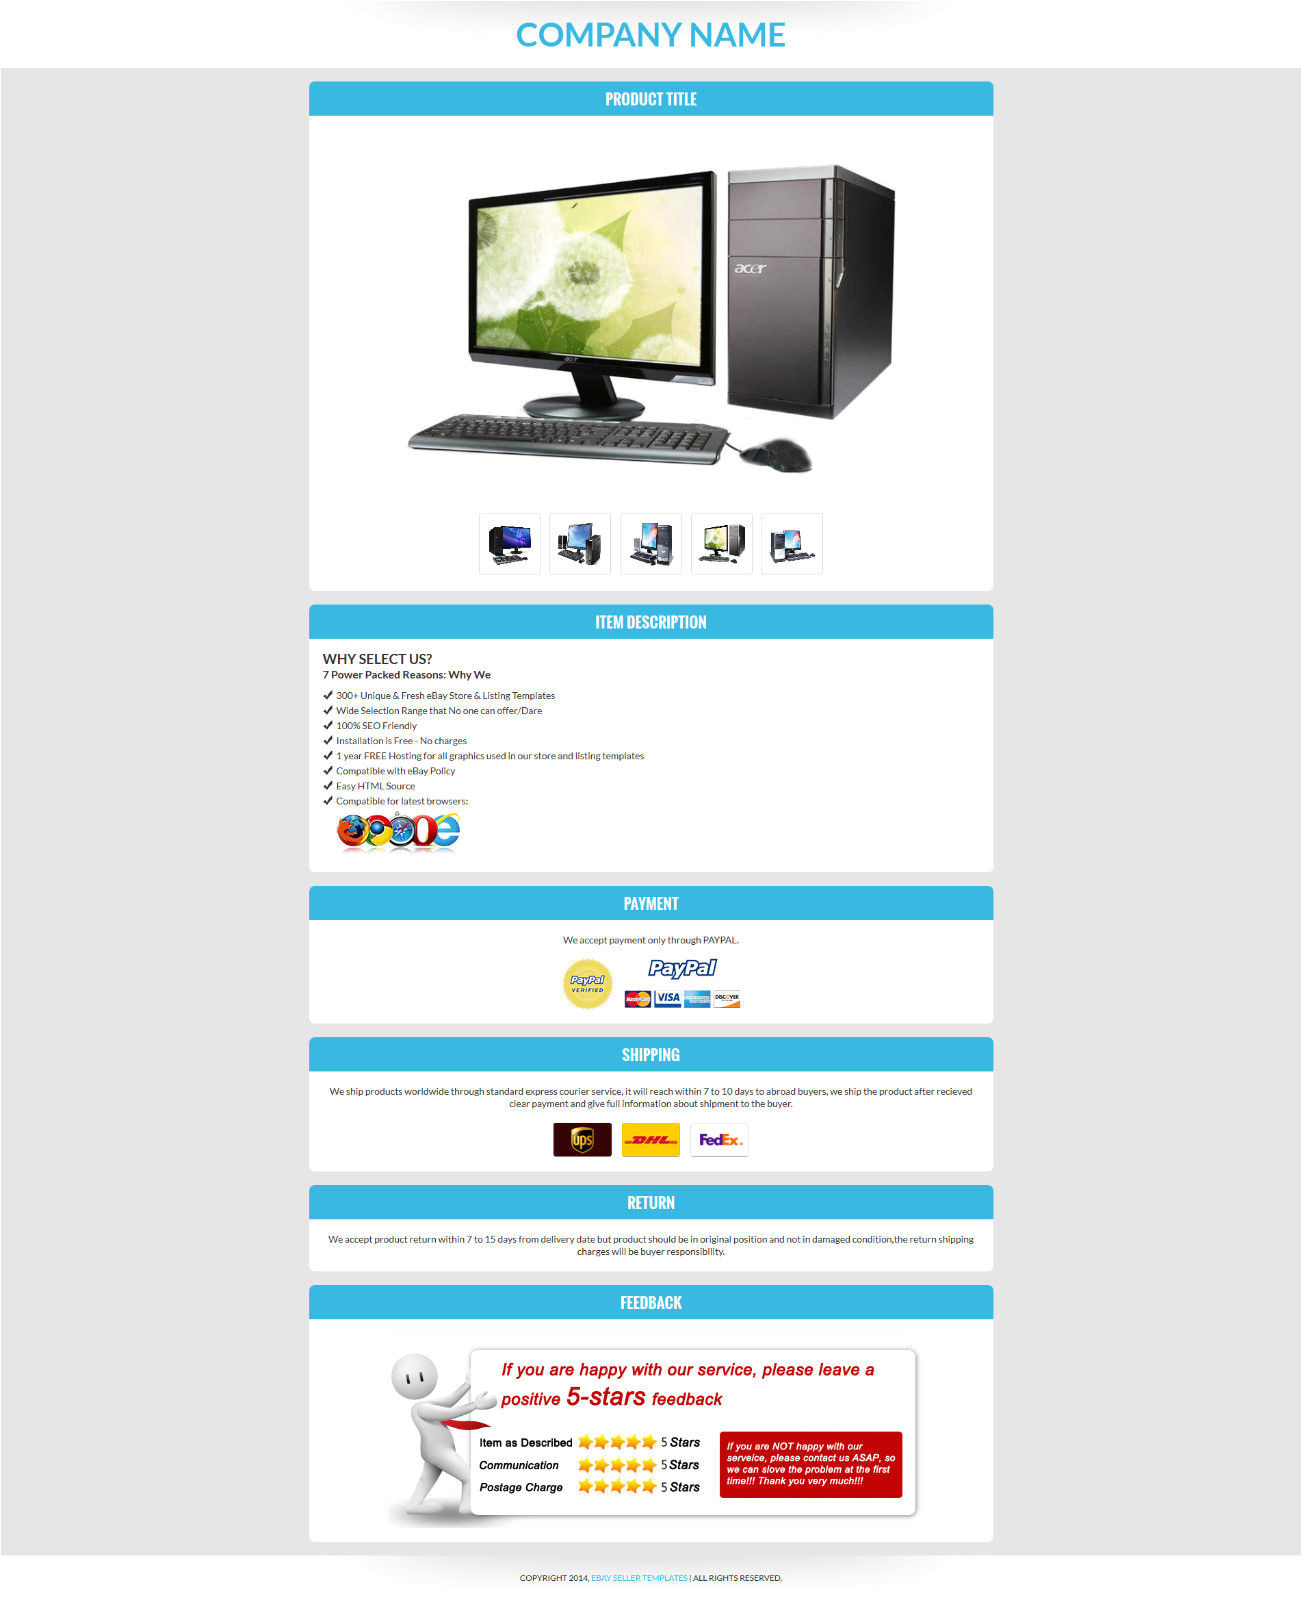 free ebay templates html download printable easy craigslist html template car dealers post cars and more of free ebay templates html download picture gallery for website ebay html template